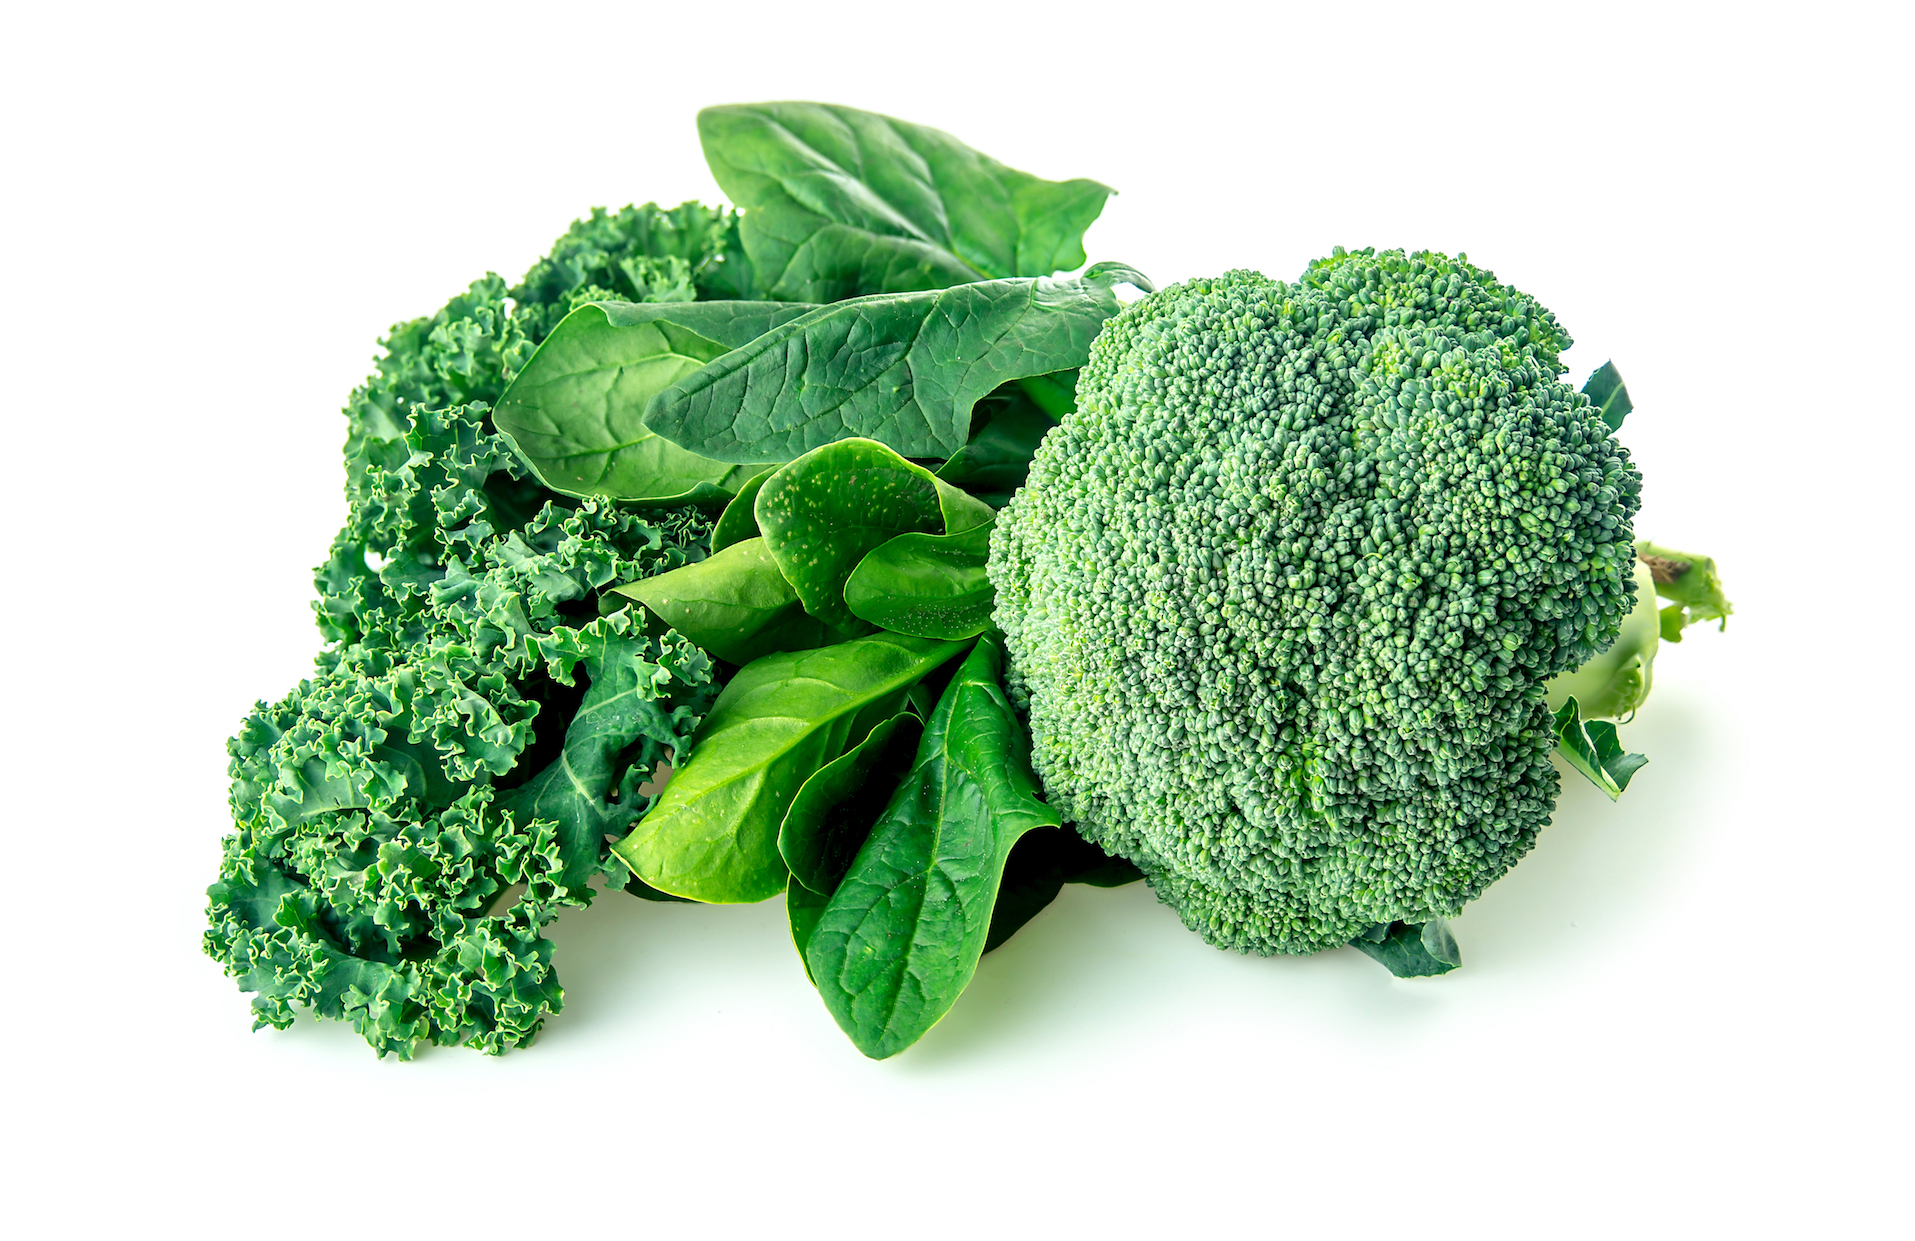 Eating vegetables such as kale, broccoli, and cabbage could help prevent gut inflammation and colon cancer.